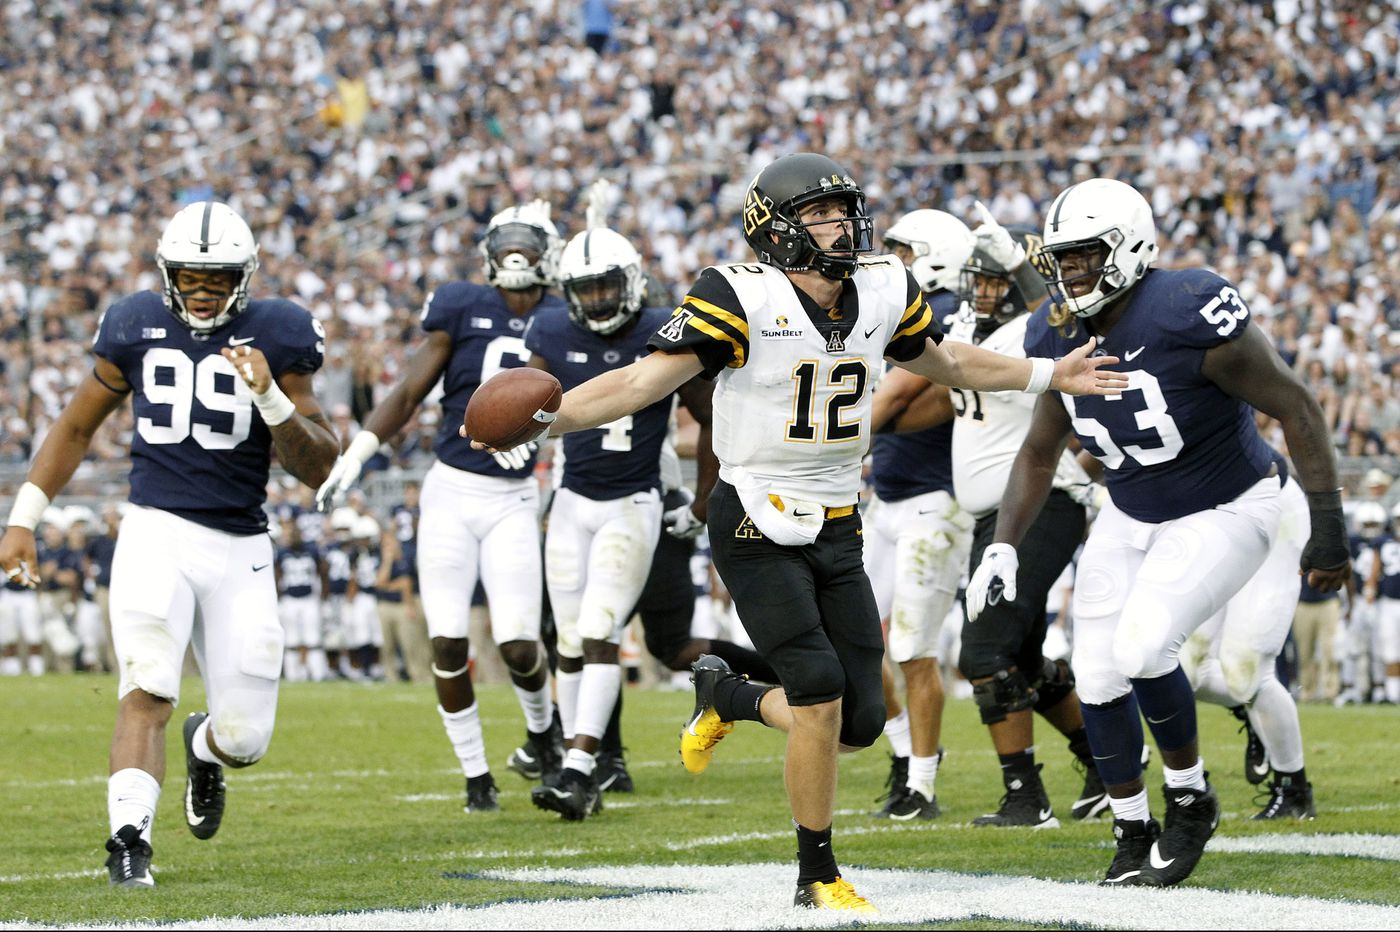 appalachian state flirts with college football upset history again